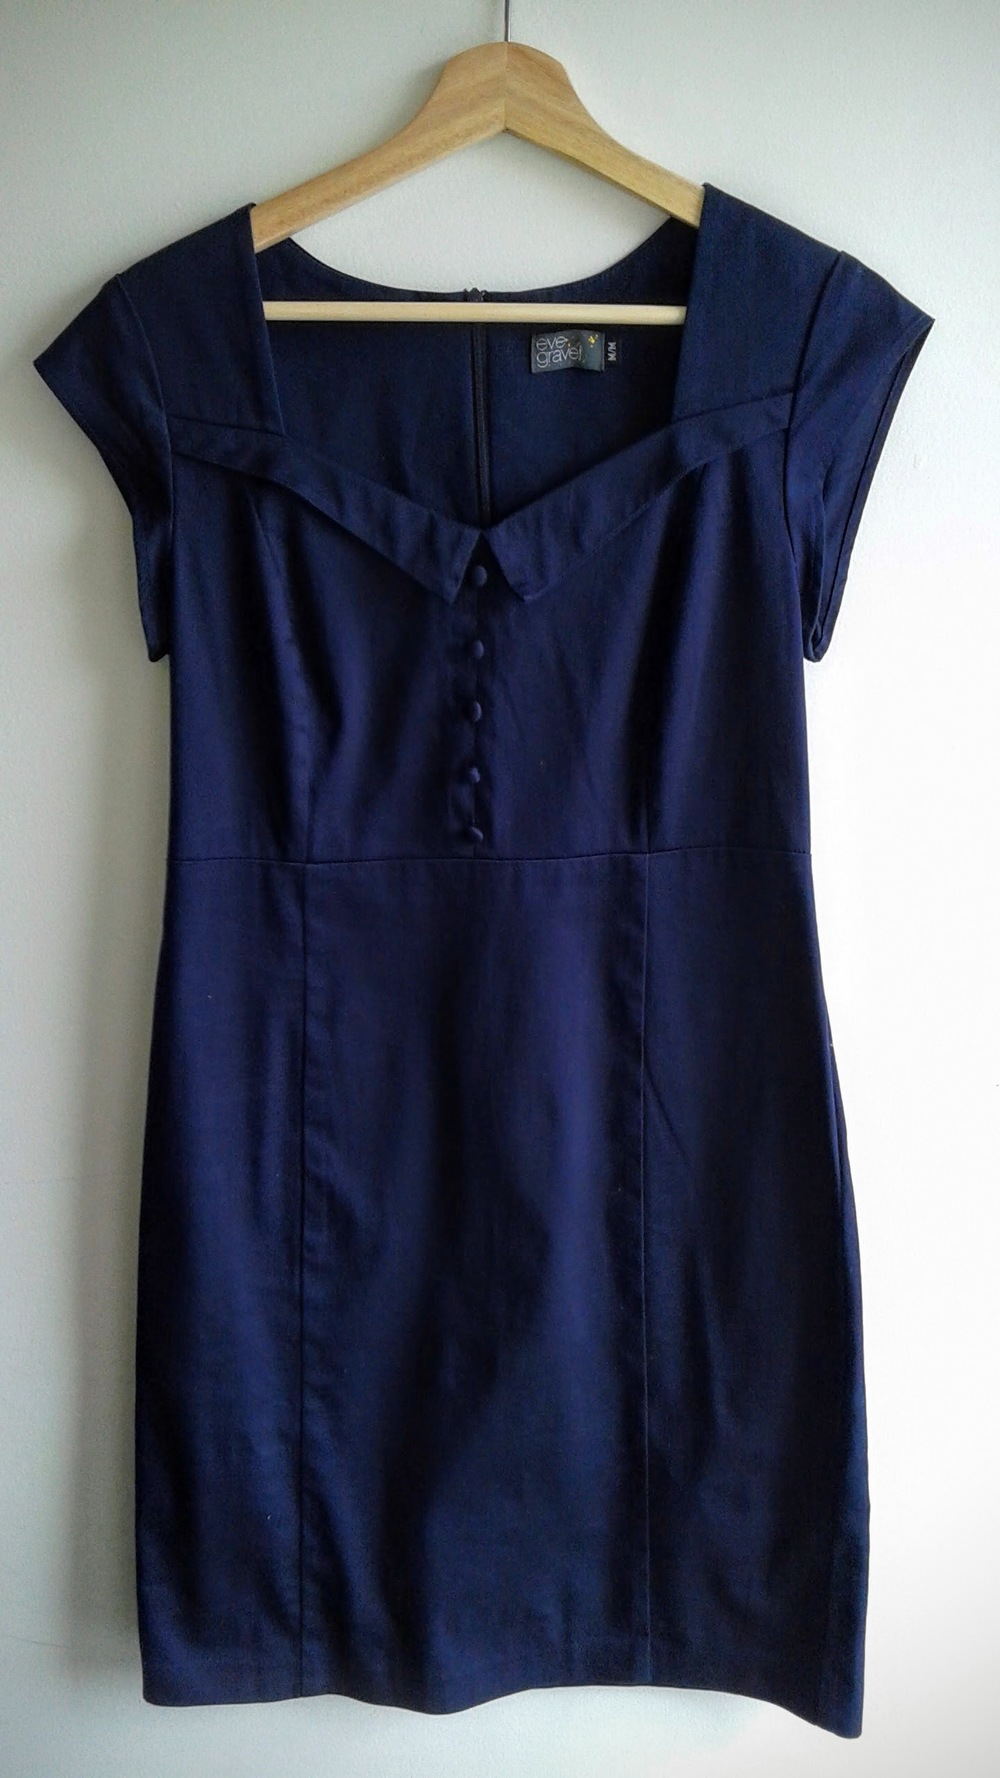 Eve Gravel dress, Size M, $32